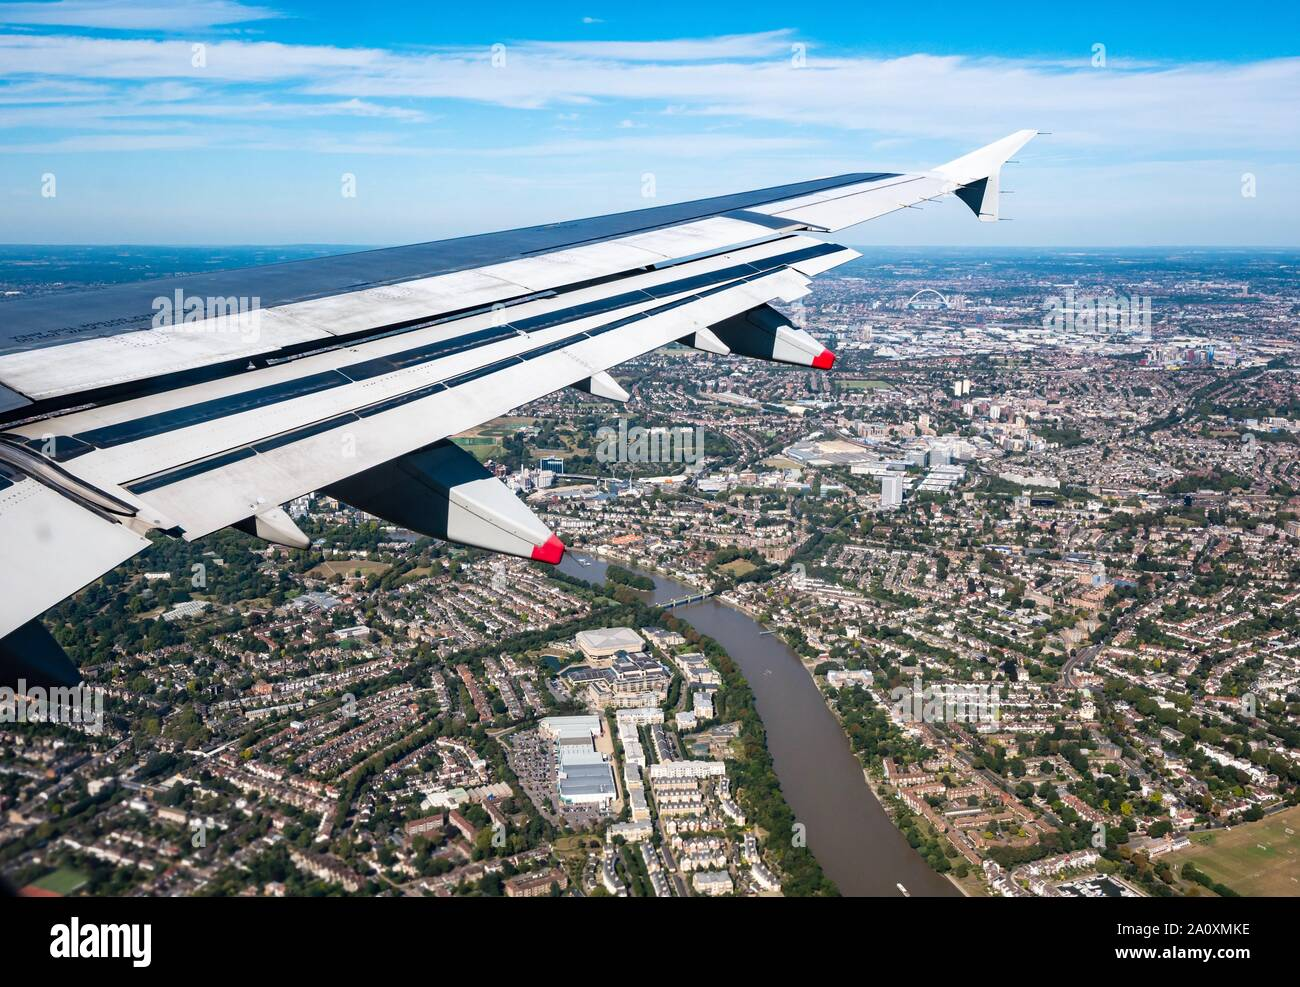 view-from-plane-window-with-wing-over-th